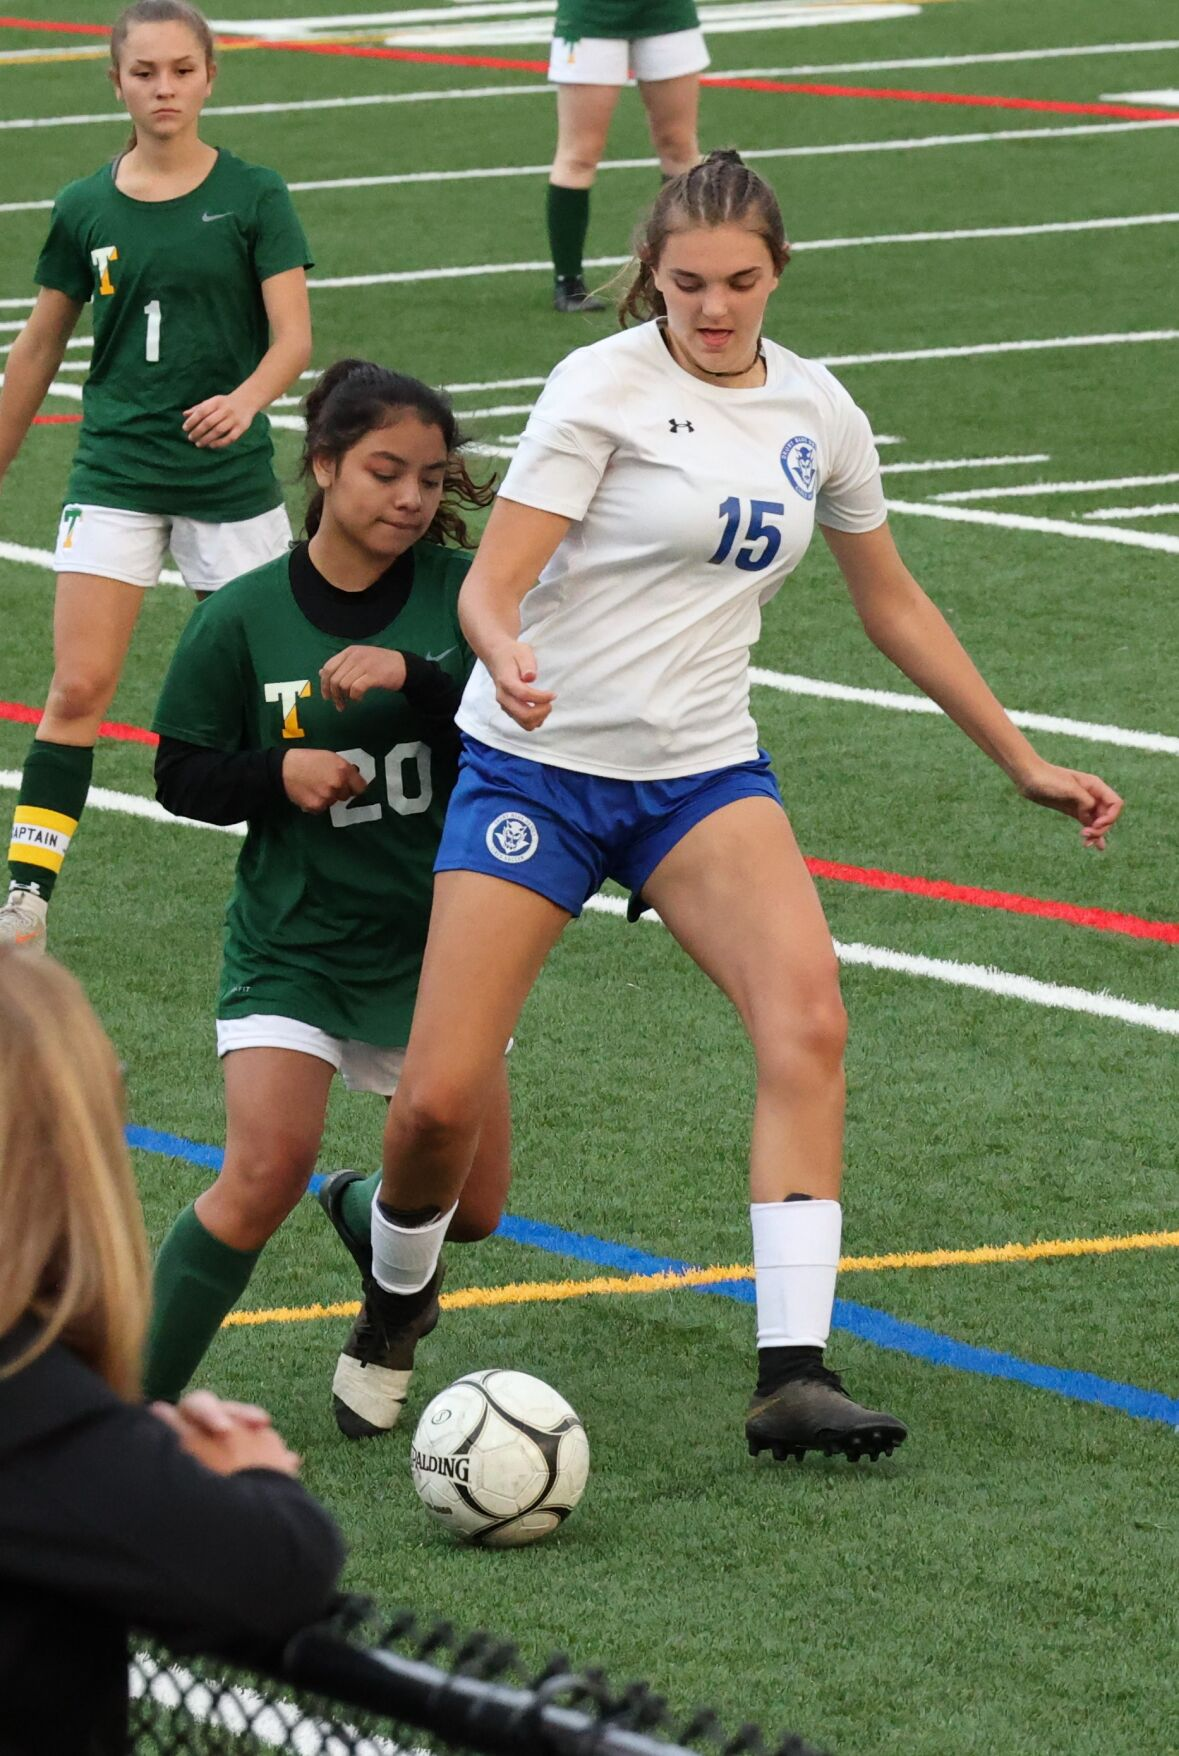 alyssa russell and maria gonzalez go for the ball